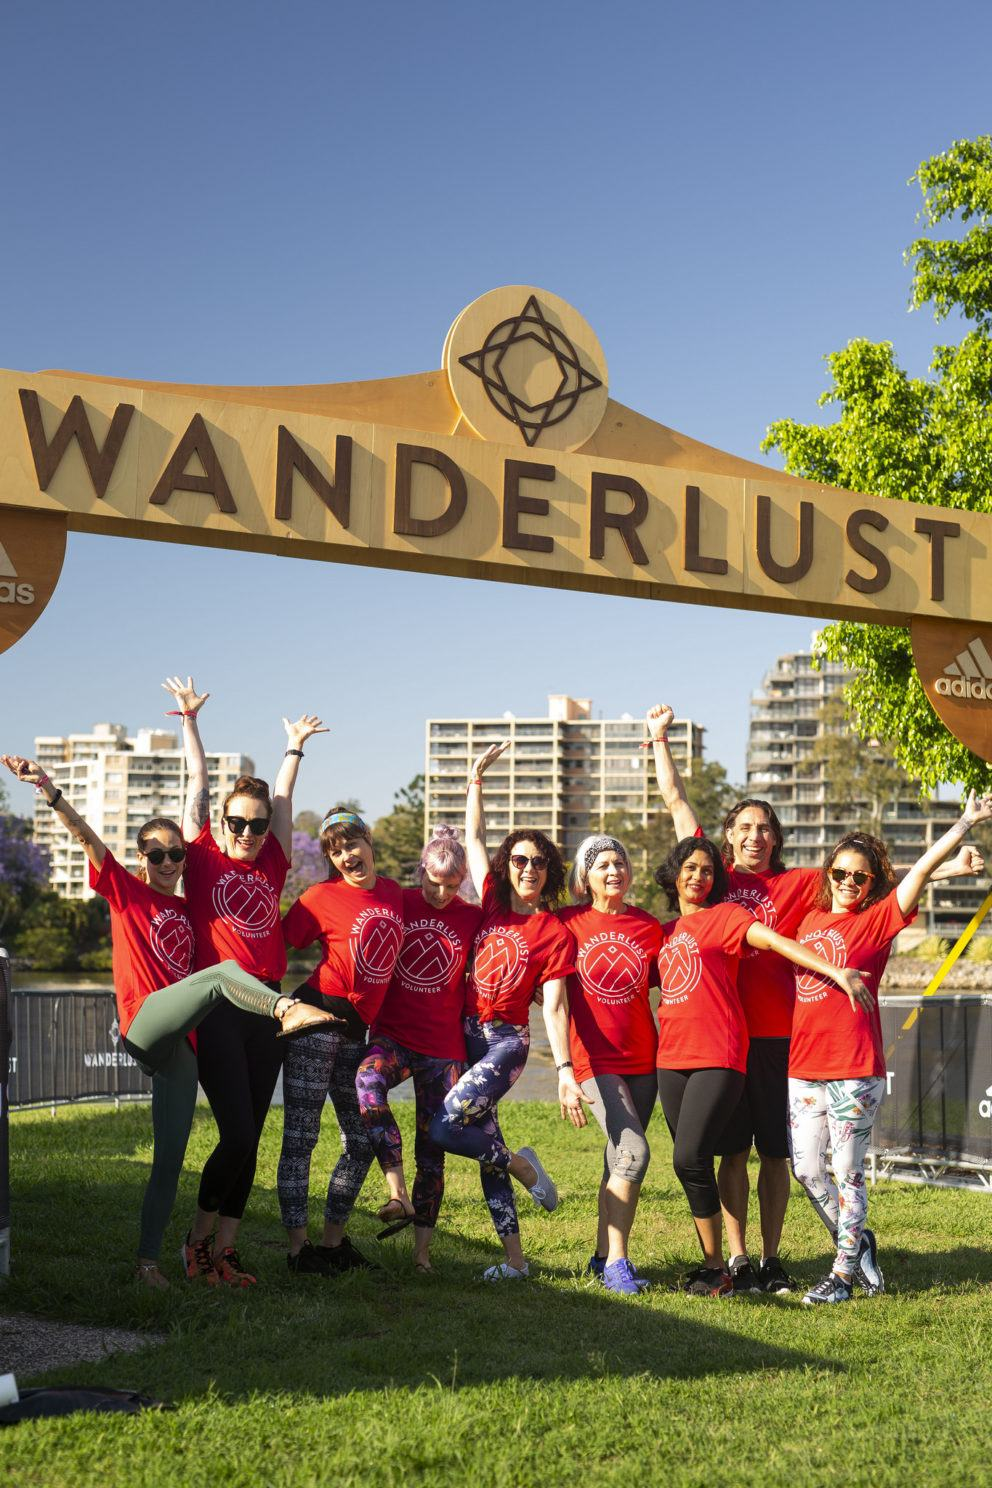 group of people in red shirts under Wanderlust arch